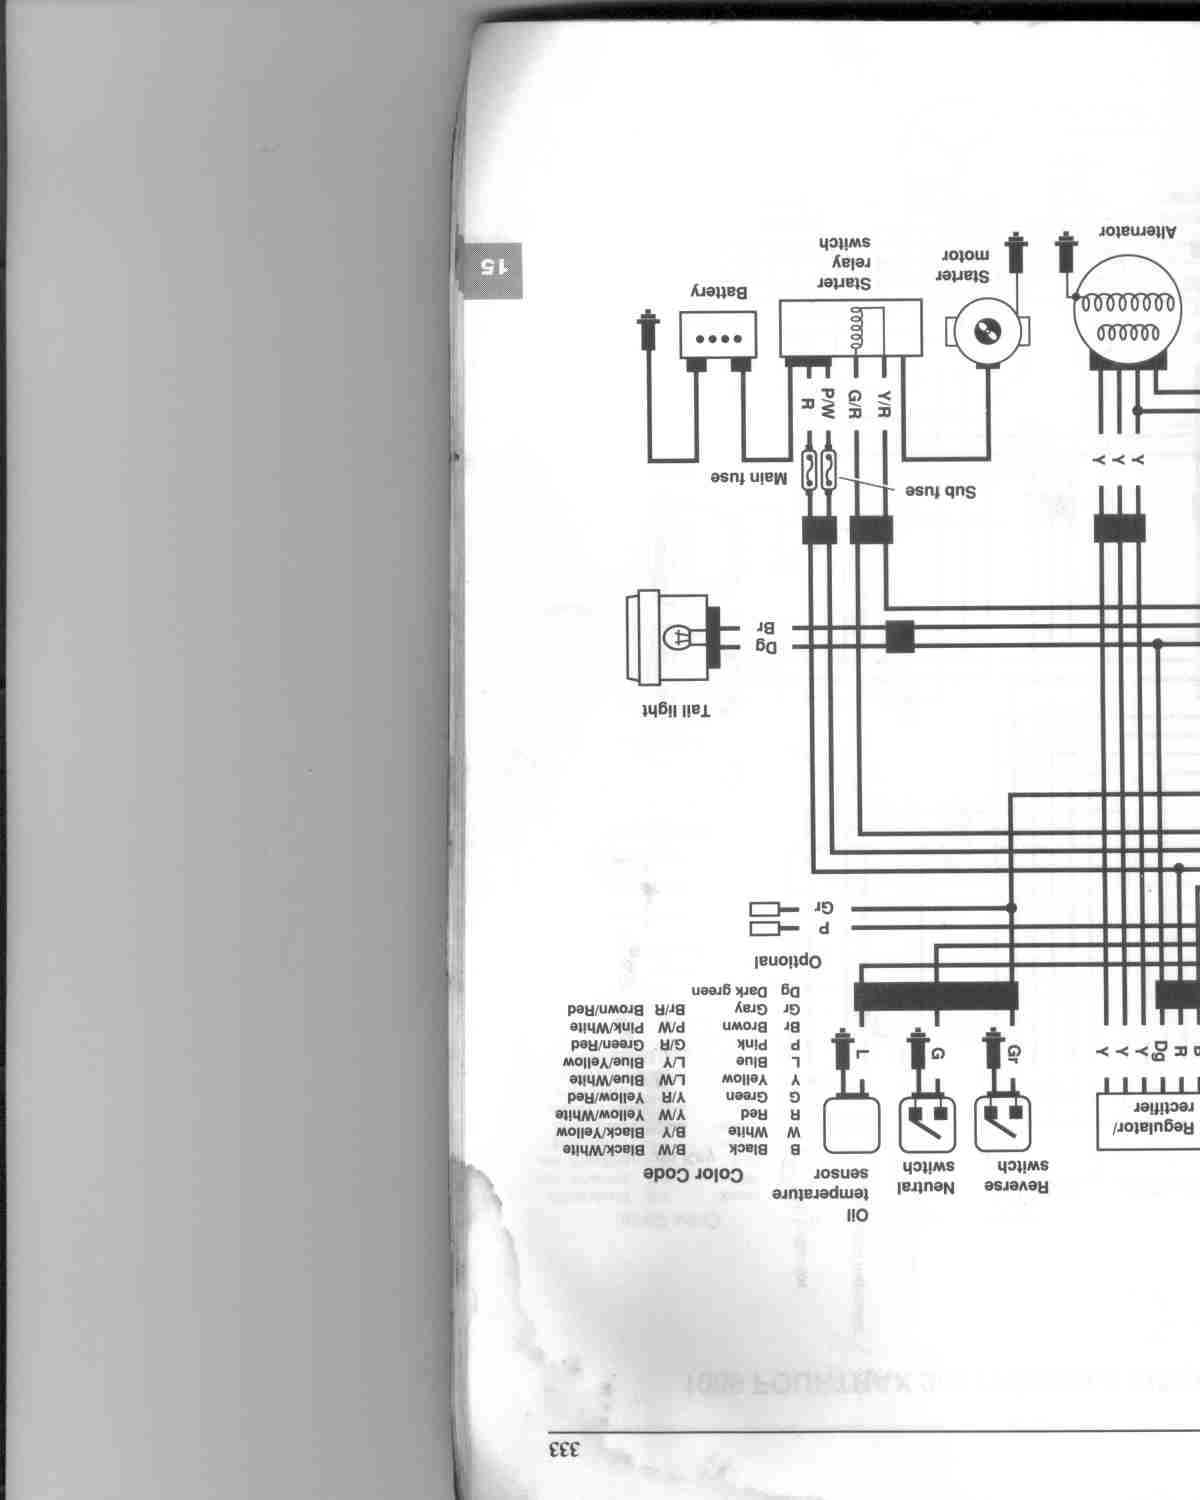 Trx300 Wiring Diagram - Clarion Marine Stereo Radio Wiring Diagram Free  Download - source-auto3.tukune.jeanjaures37.fr | Trx300 Wiring Diagram Needed Atvconnection Atv Enthusiast |  | Wiring Diagram Resource